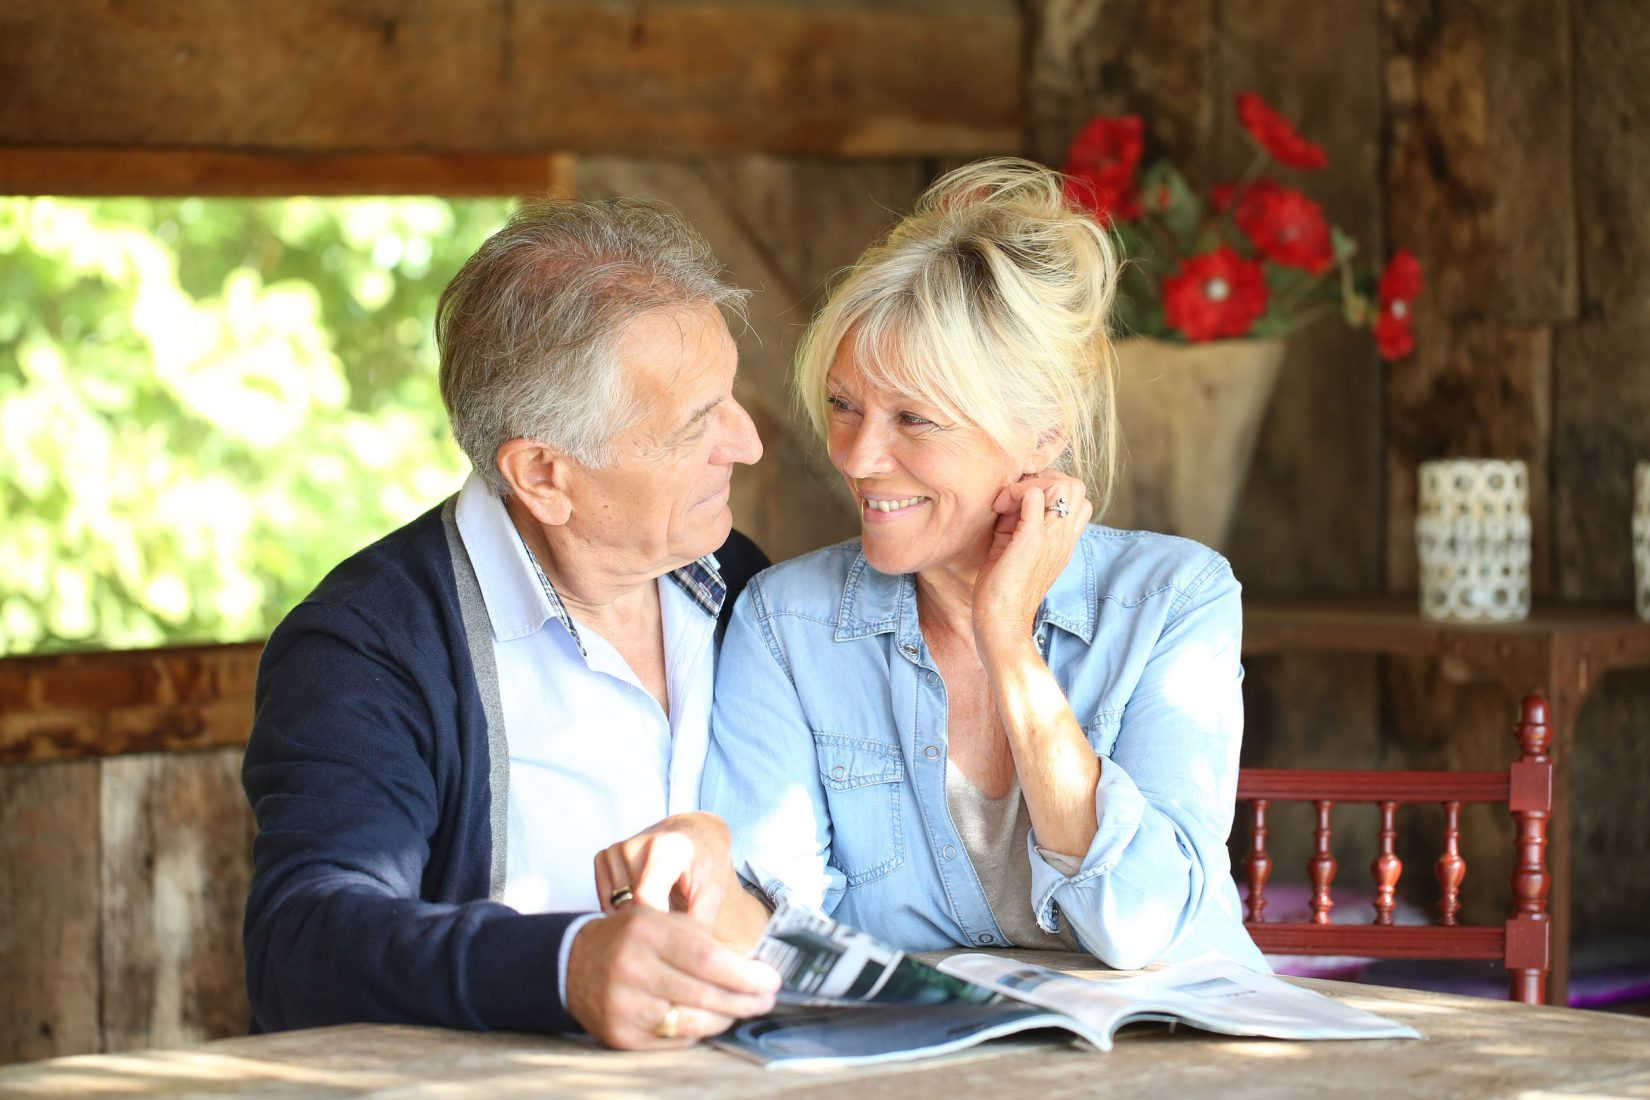 Senior couple in yard reading magazine about ED injections trimix